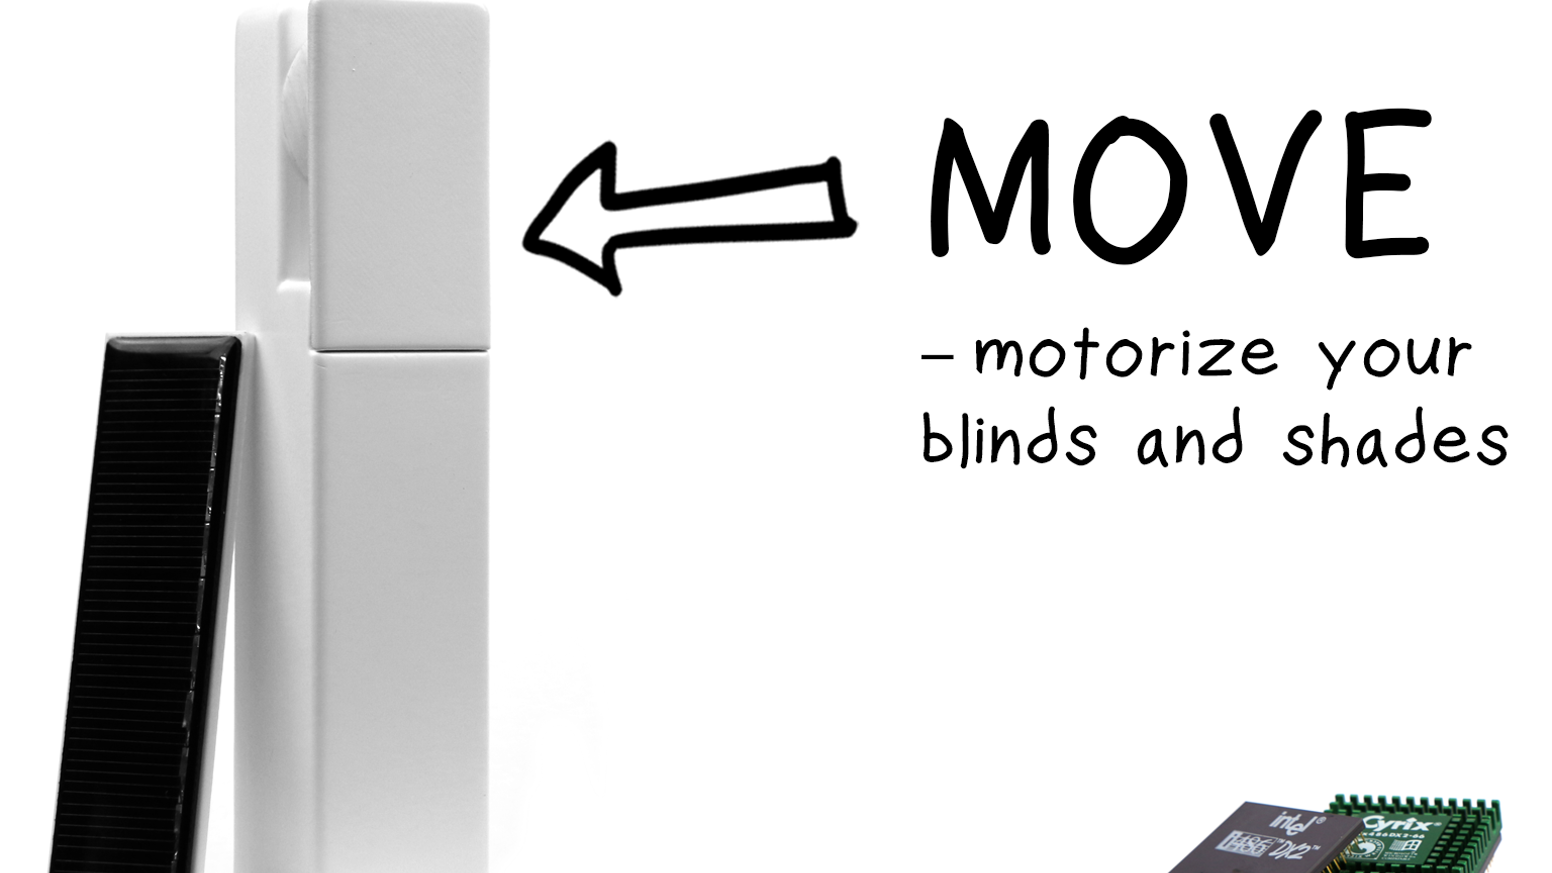 A bluetooth controlled motor for your existing indoor blinds and shades